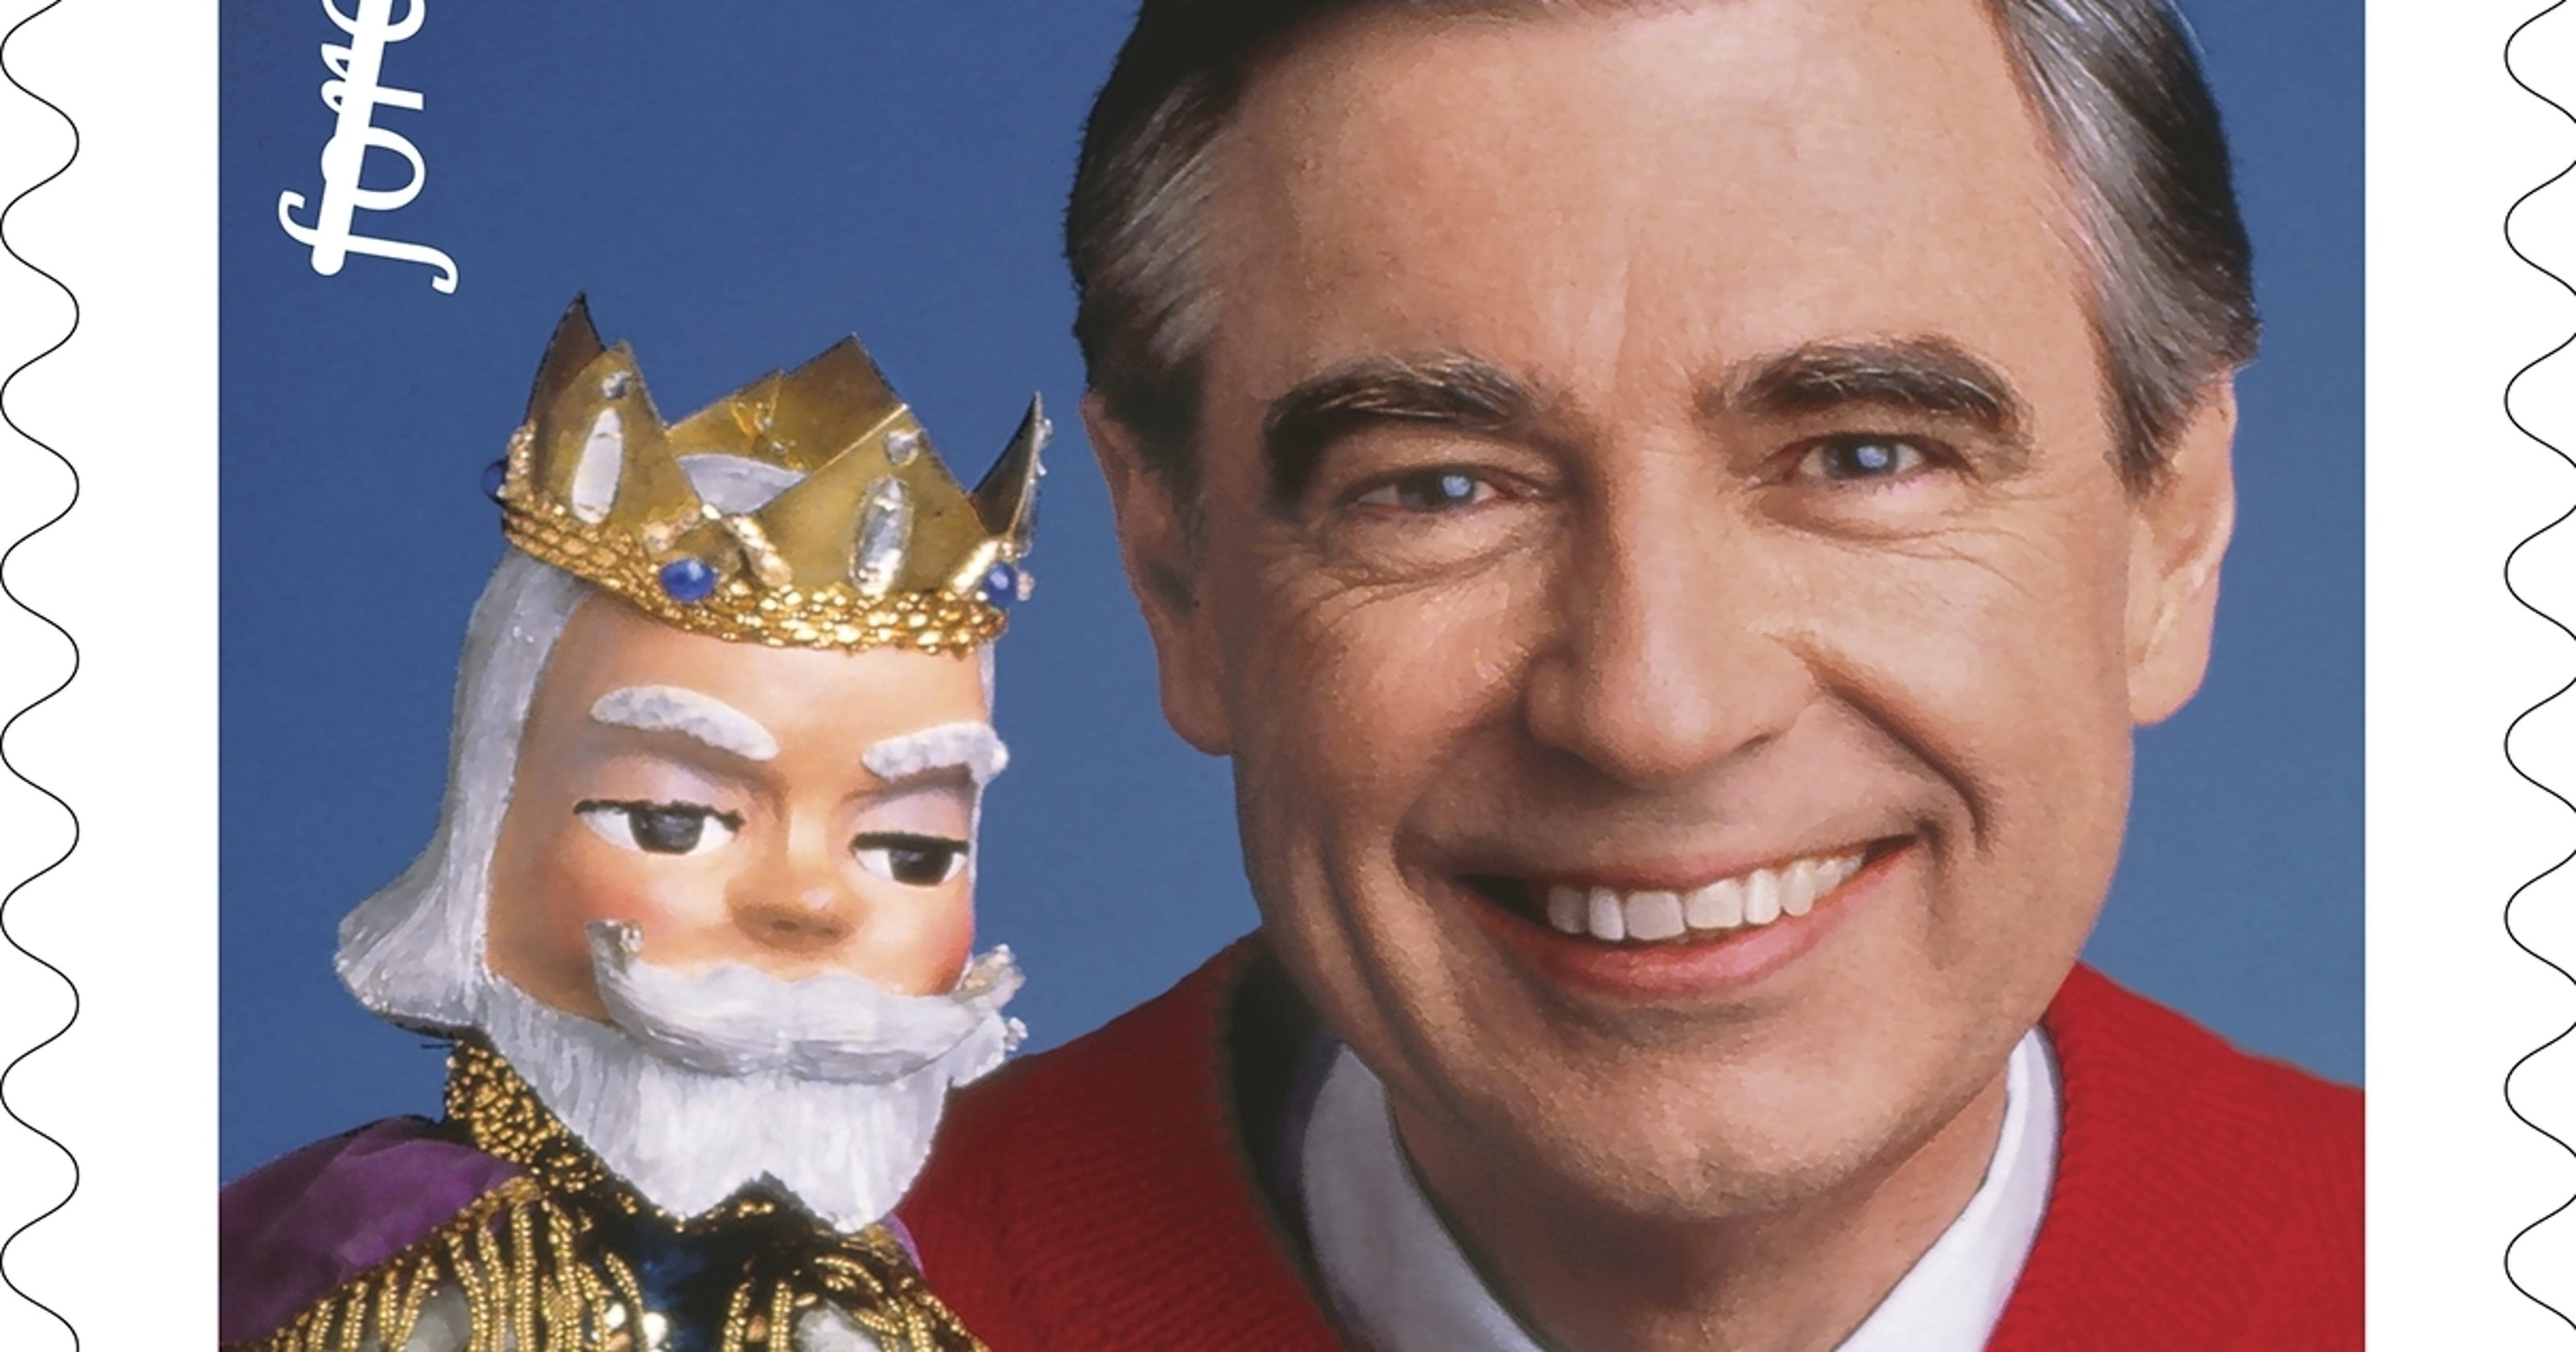 US Postal Service to unveil Mister Rogers stamp next month